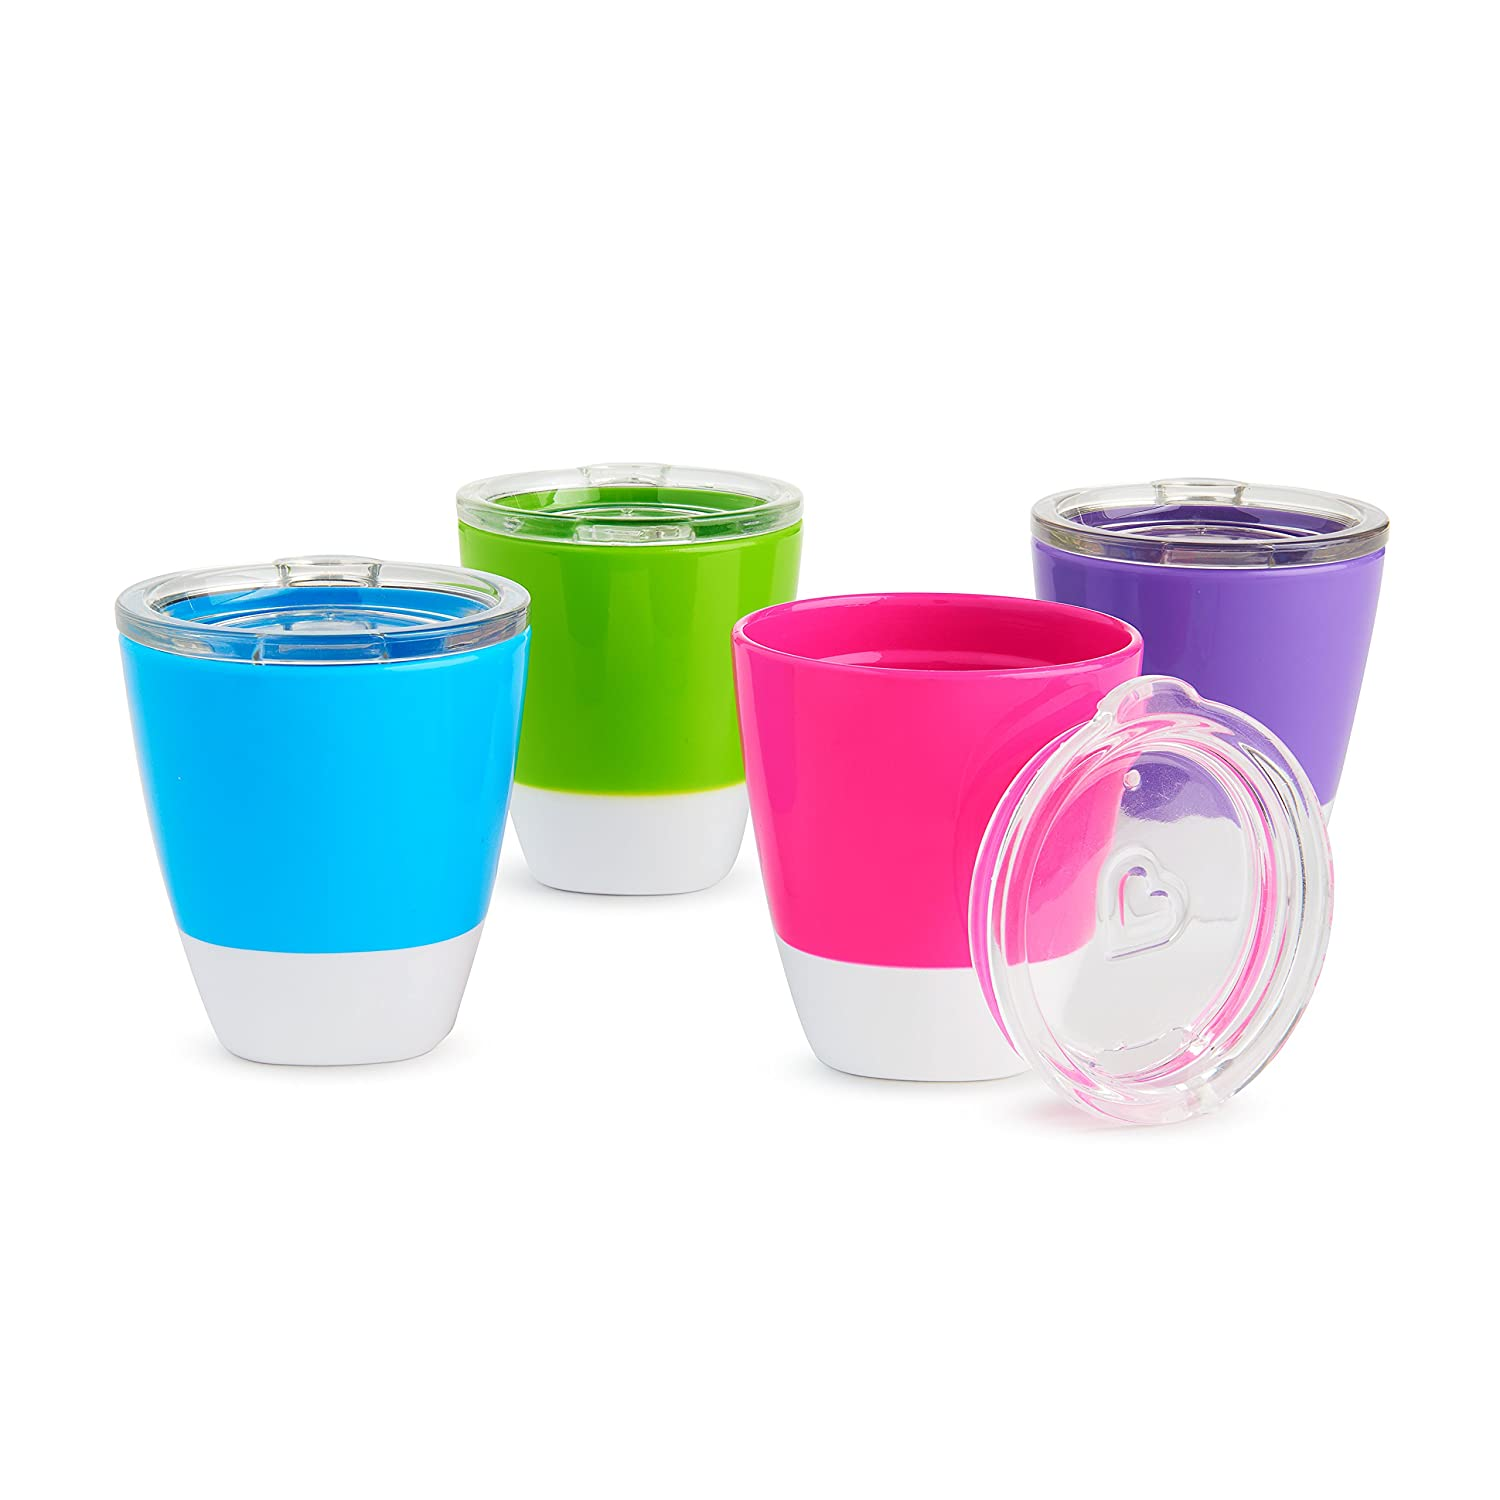 Munchkin Splash Toddler Cups with Training Lids